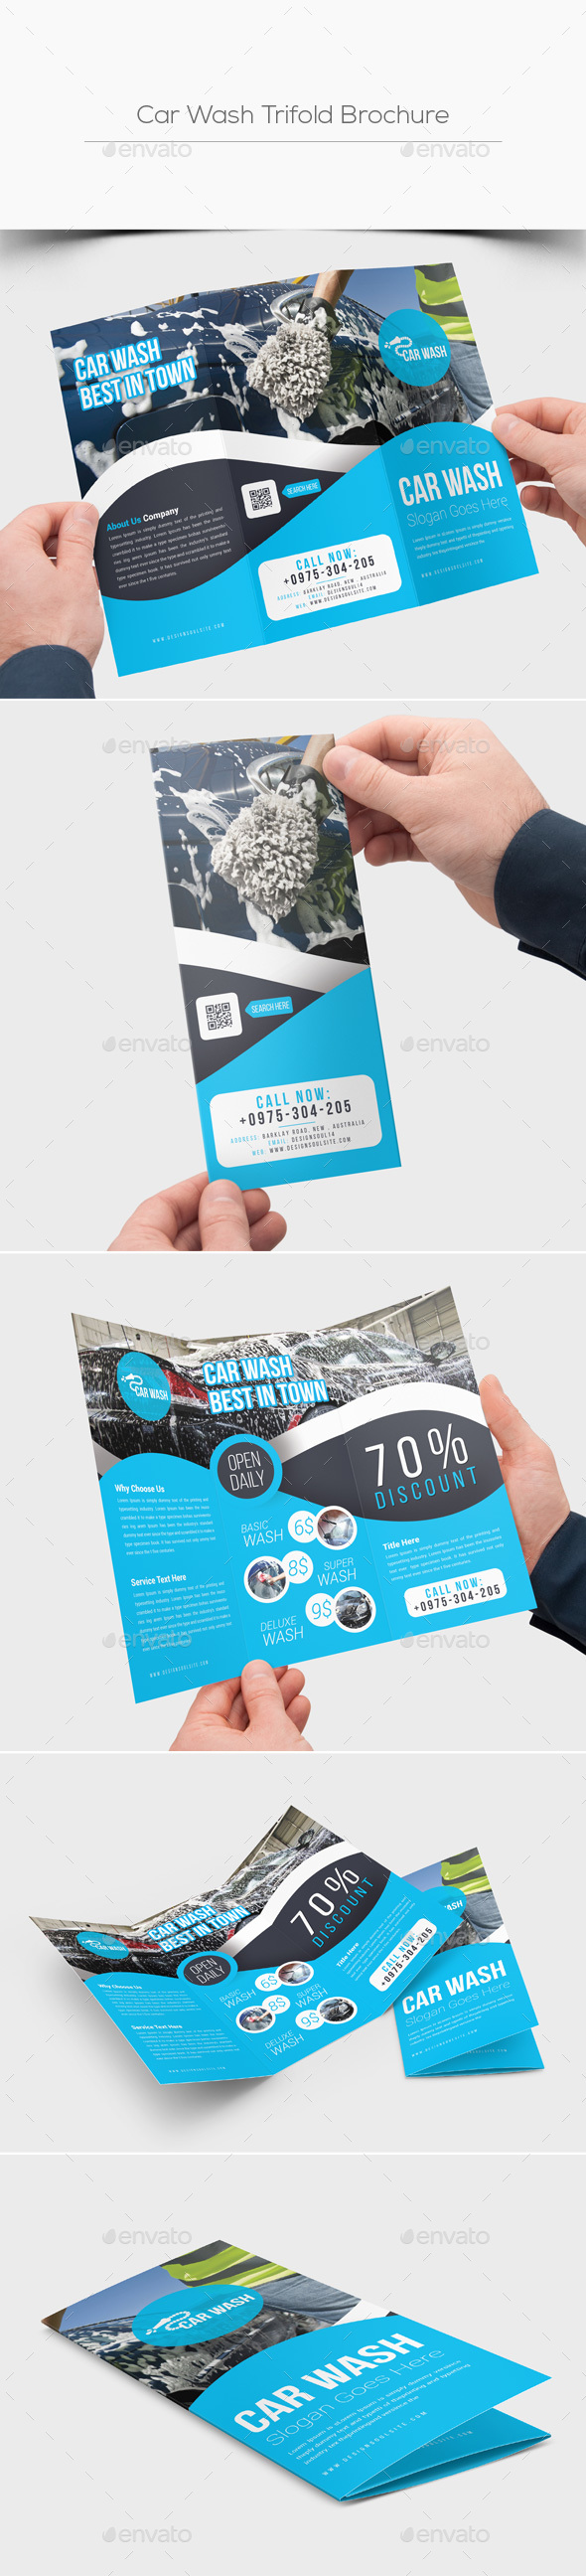 Car Wash Trifold Brochure - Corporate Brochures